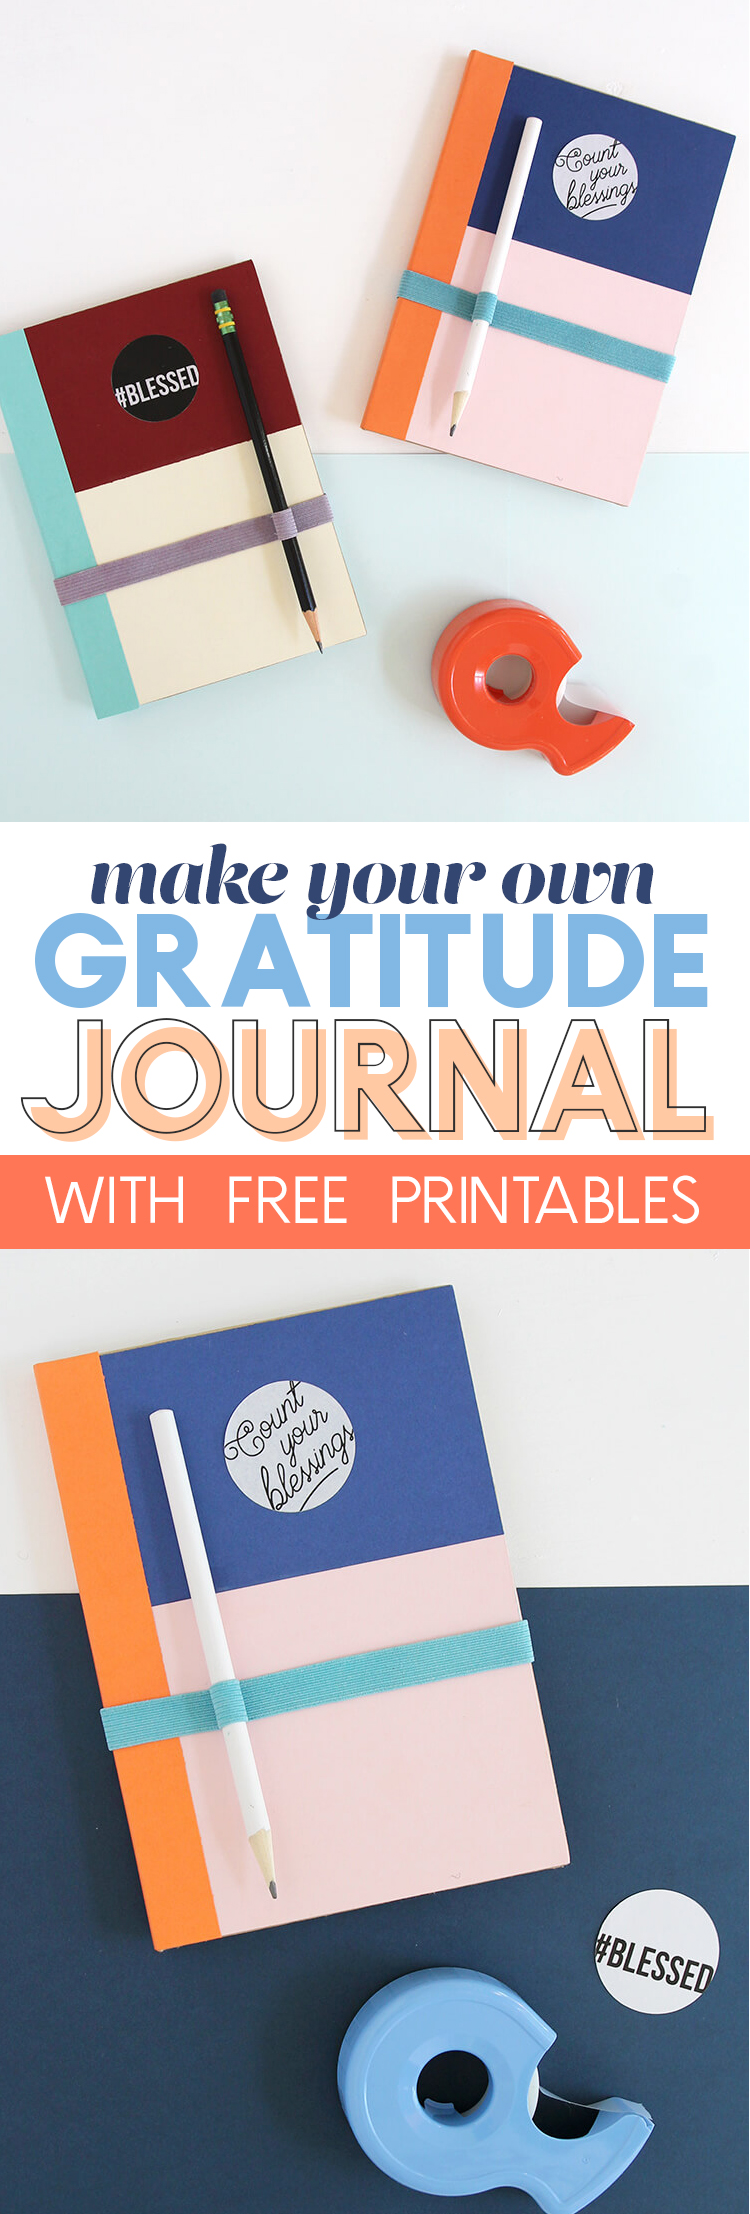 DIY Gratitude Journal - Learn how to make your own colorful gratitude journal with free printables